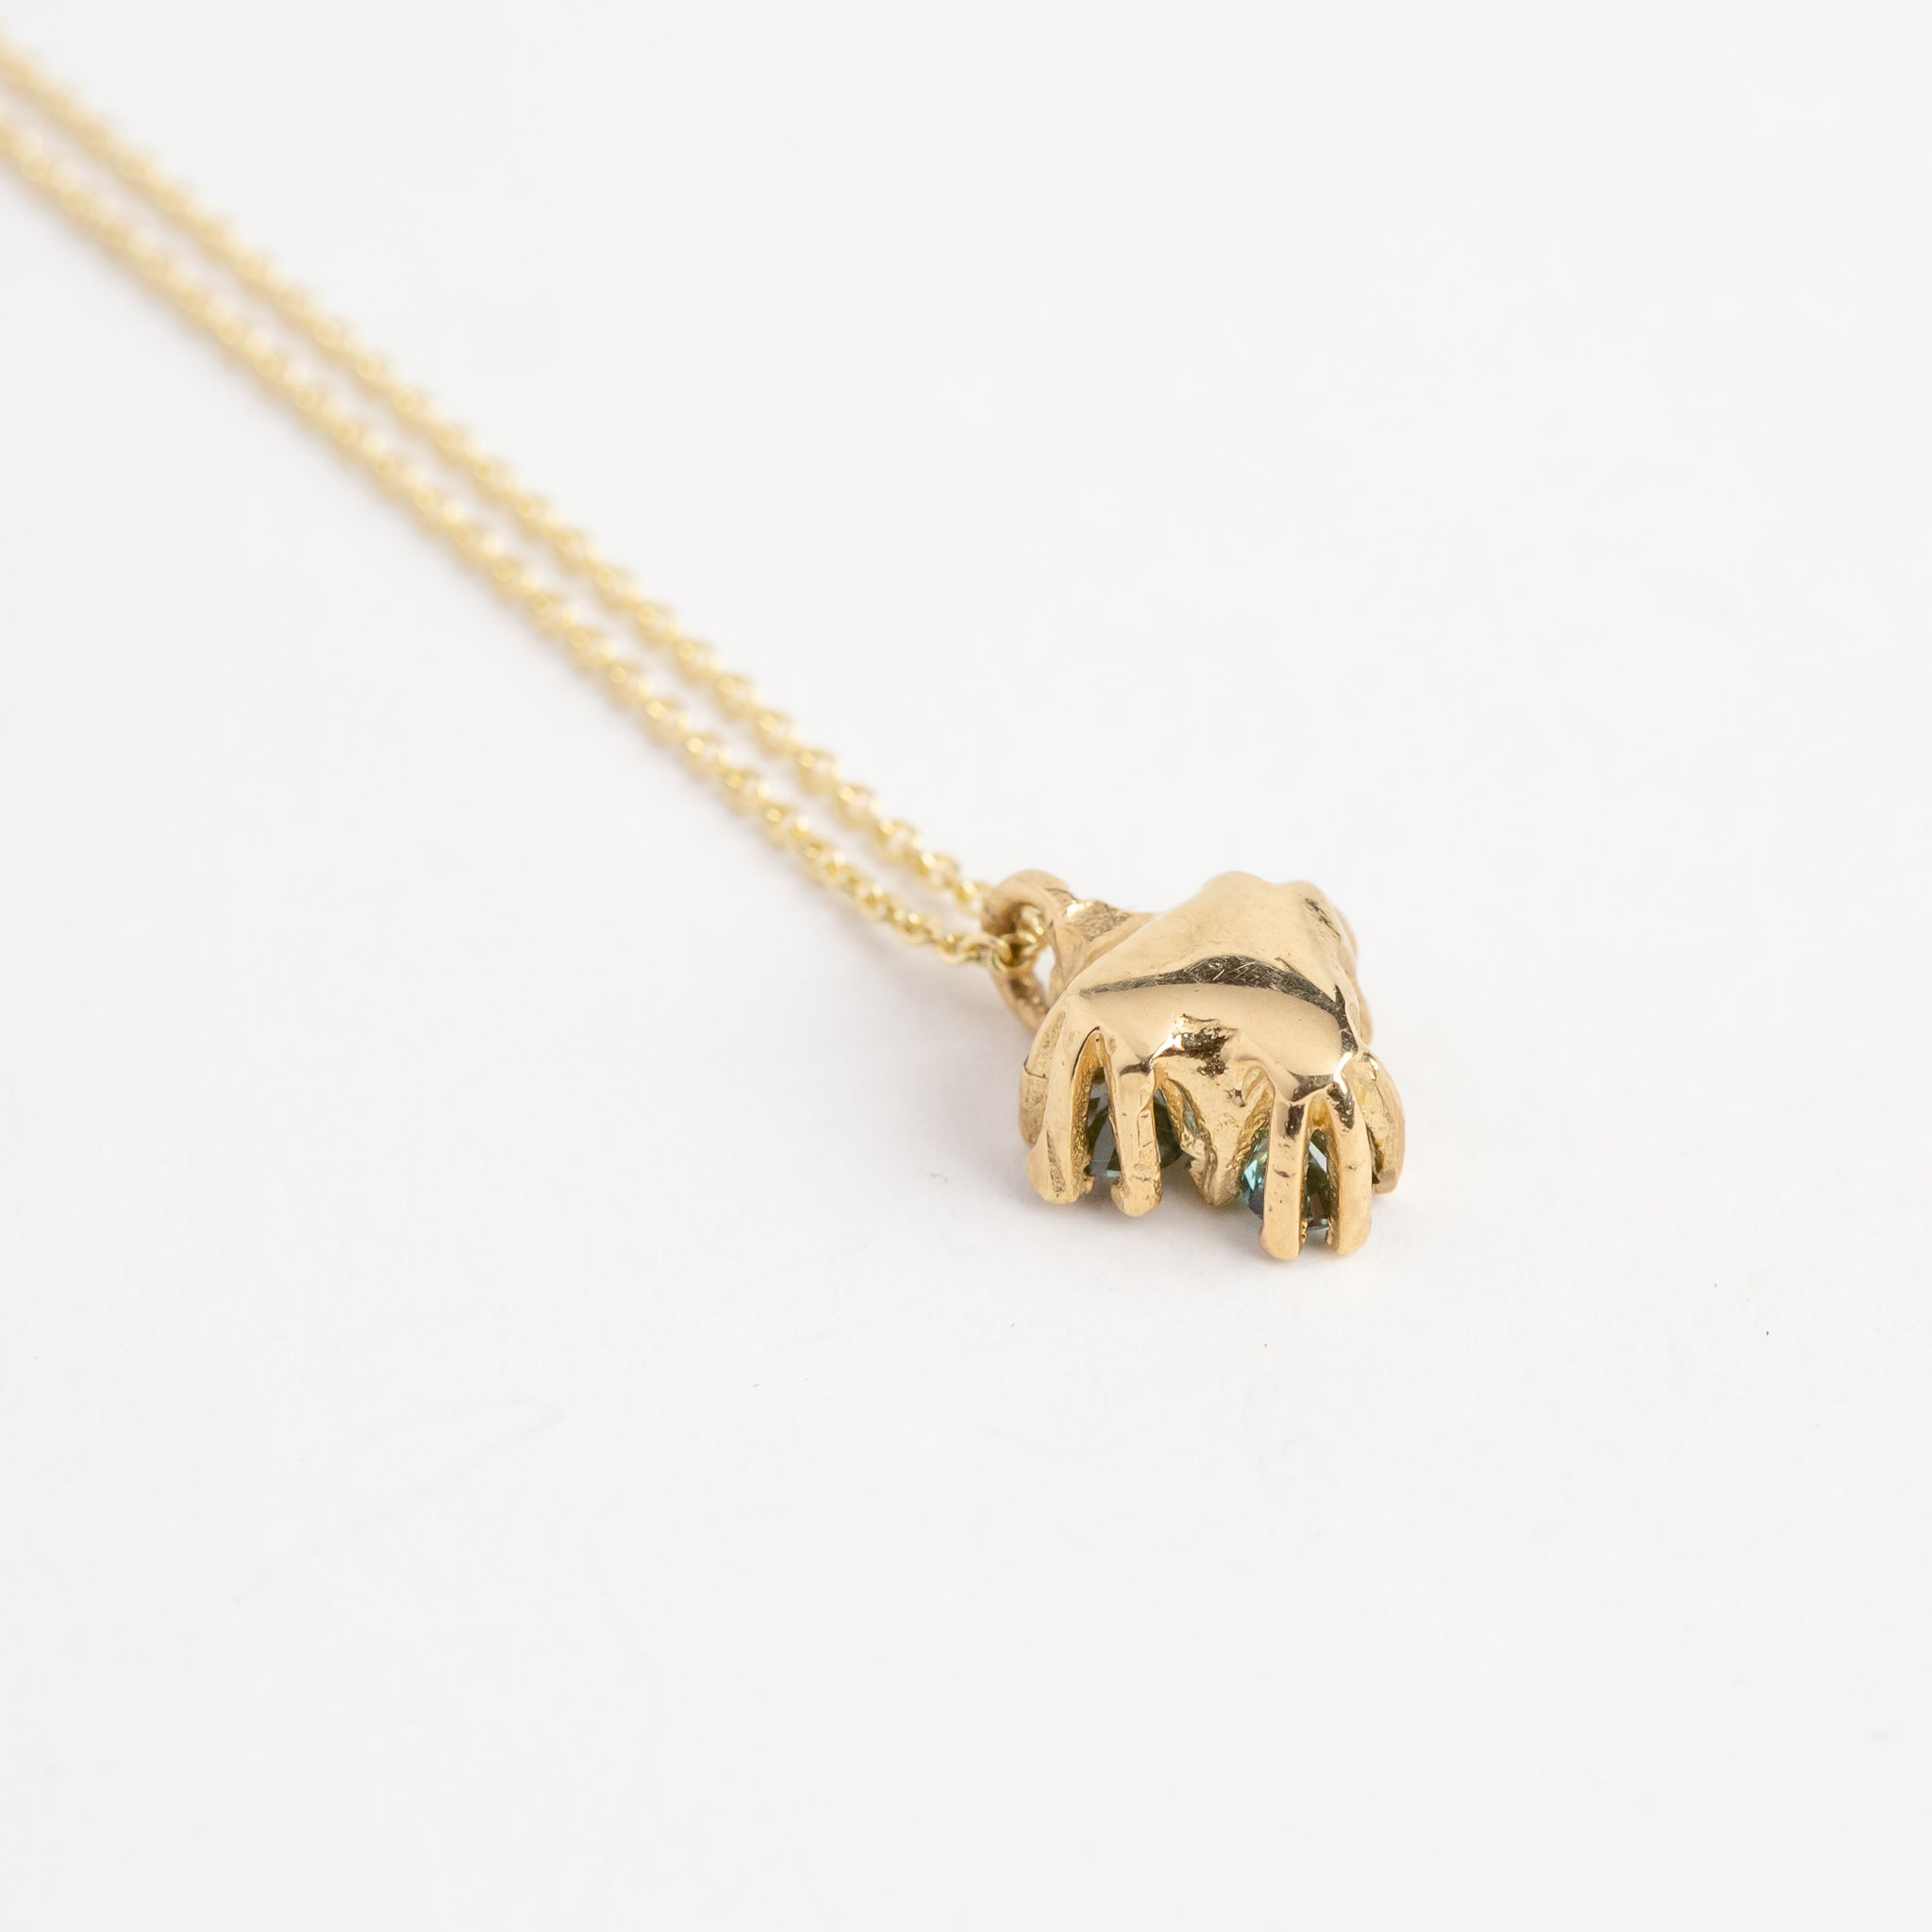 ethically sourced australian sapphire pendant necklace in 9ct yellow gold, with 9ct yellow gold chain, bespoke custom handmade